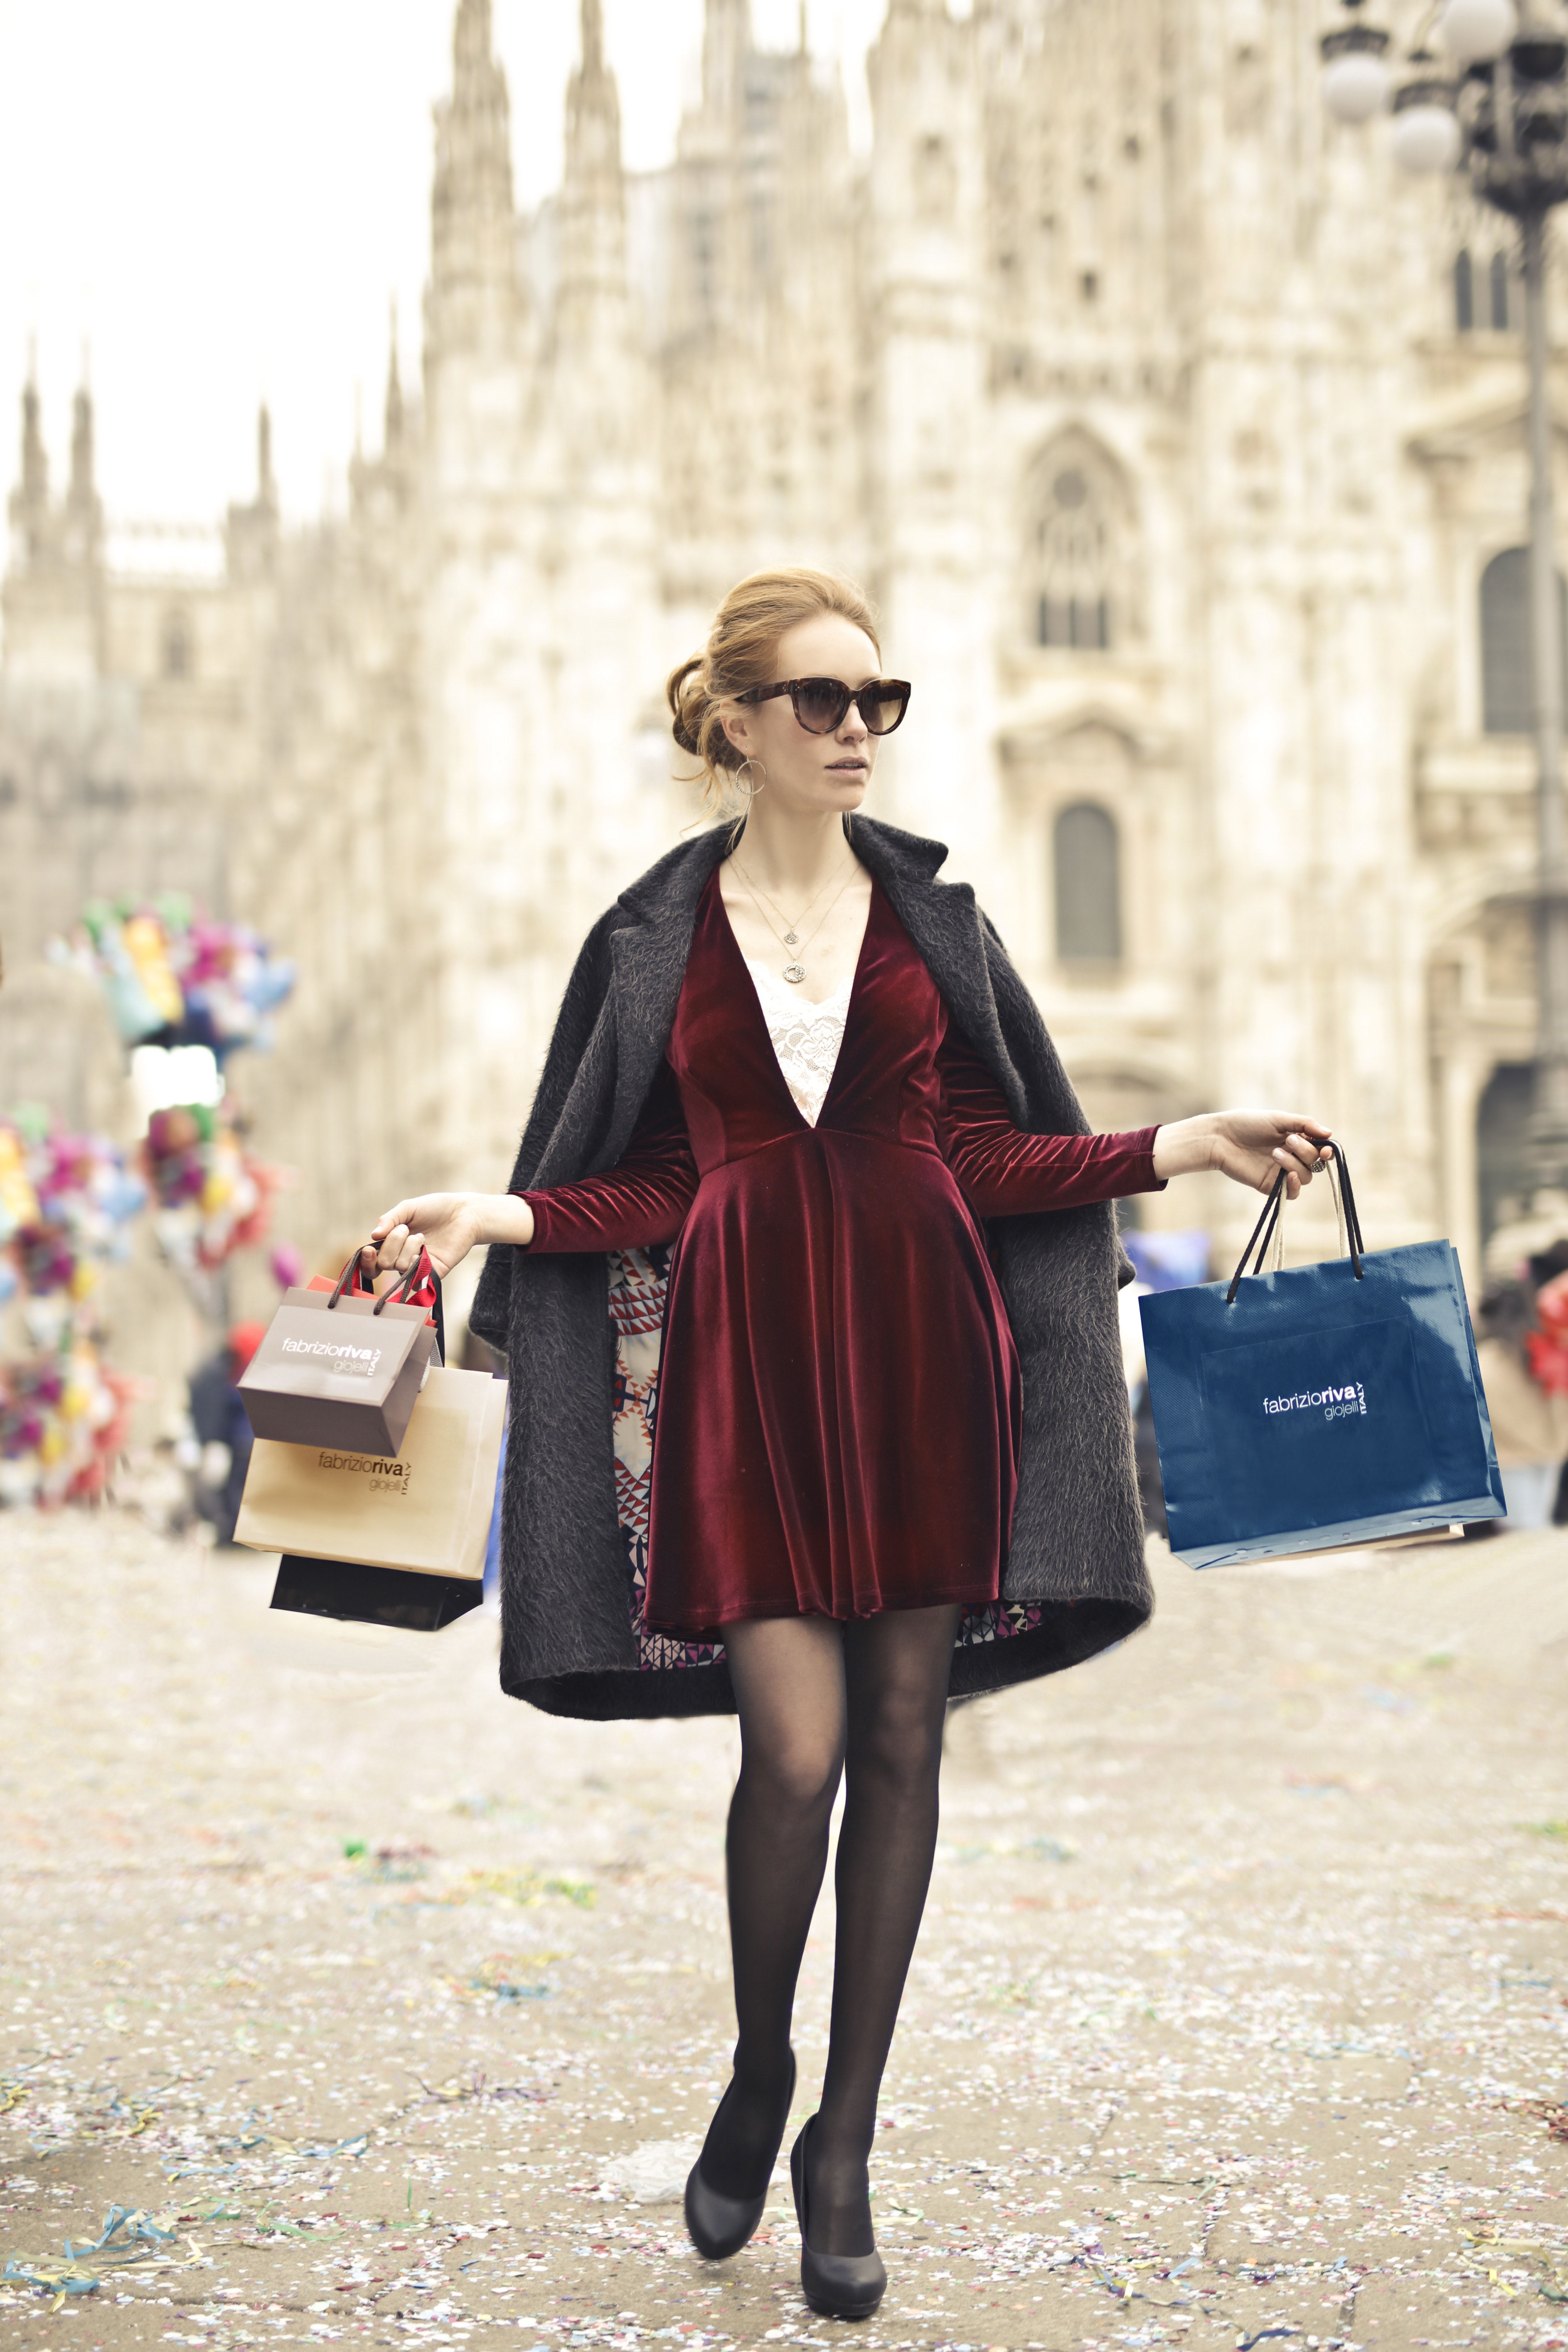 Photo of a Woman Holding Shopping Bags, Rich, Shopping, Purchase, Person, HQ Photo